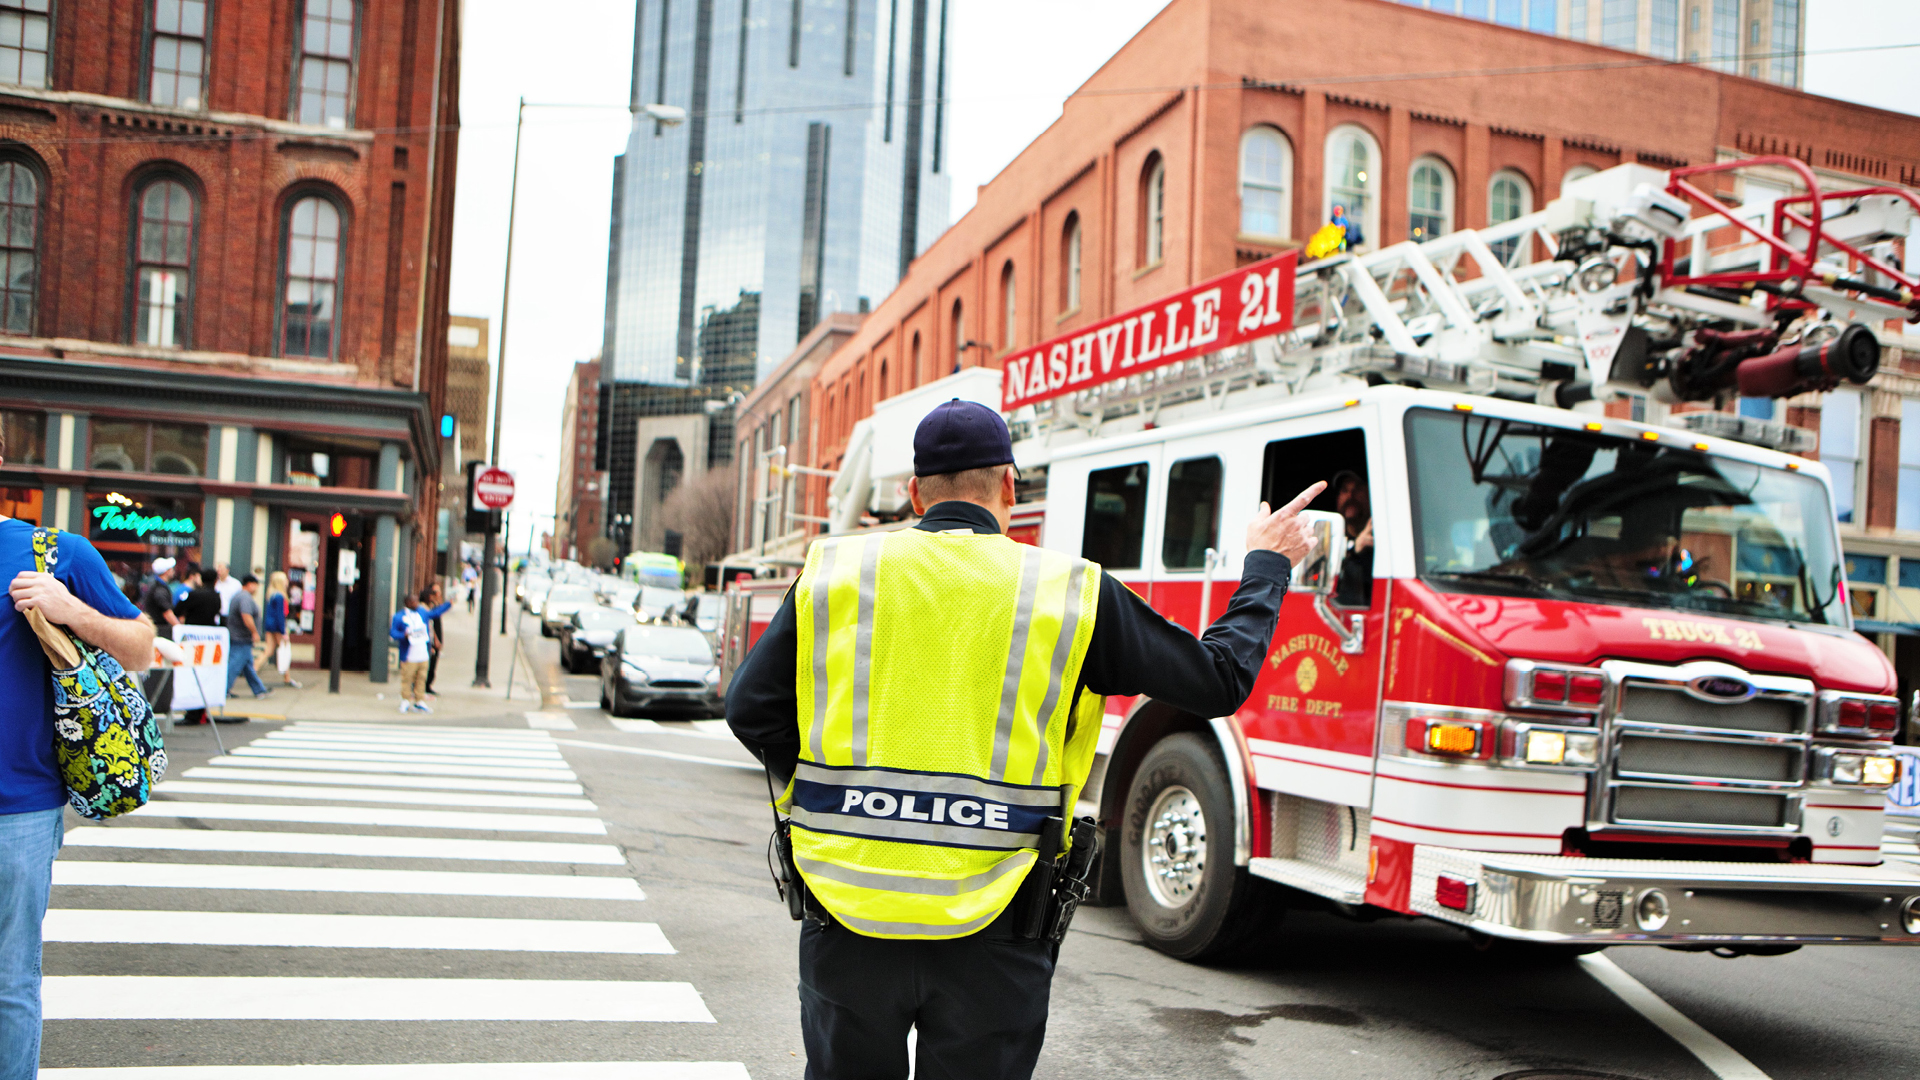 nashville police and firetruck downtown